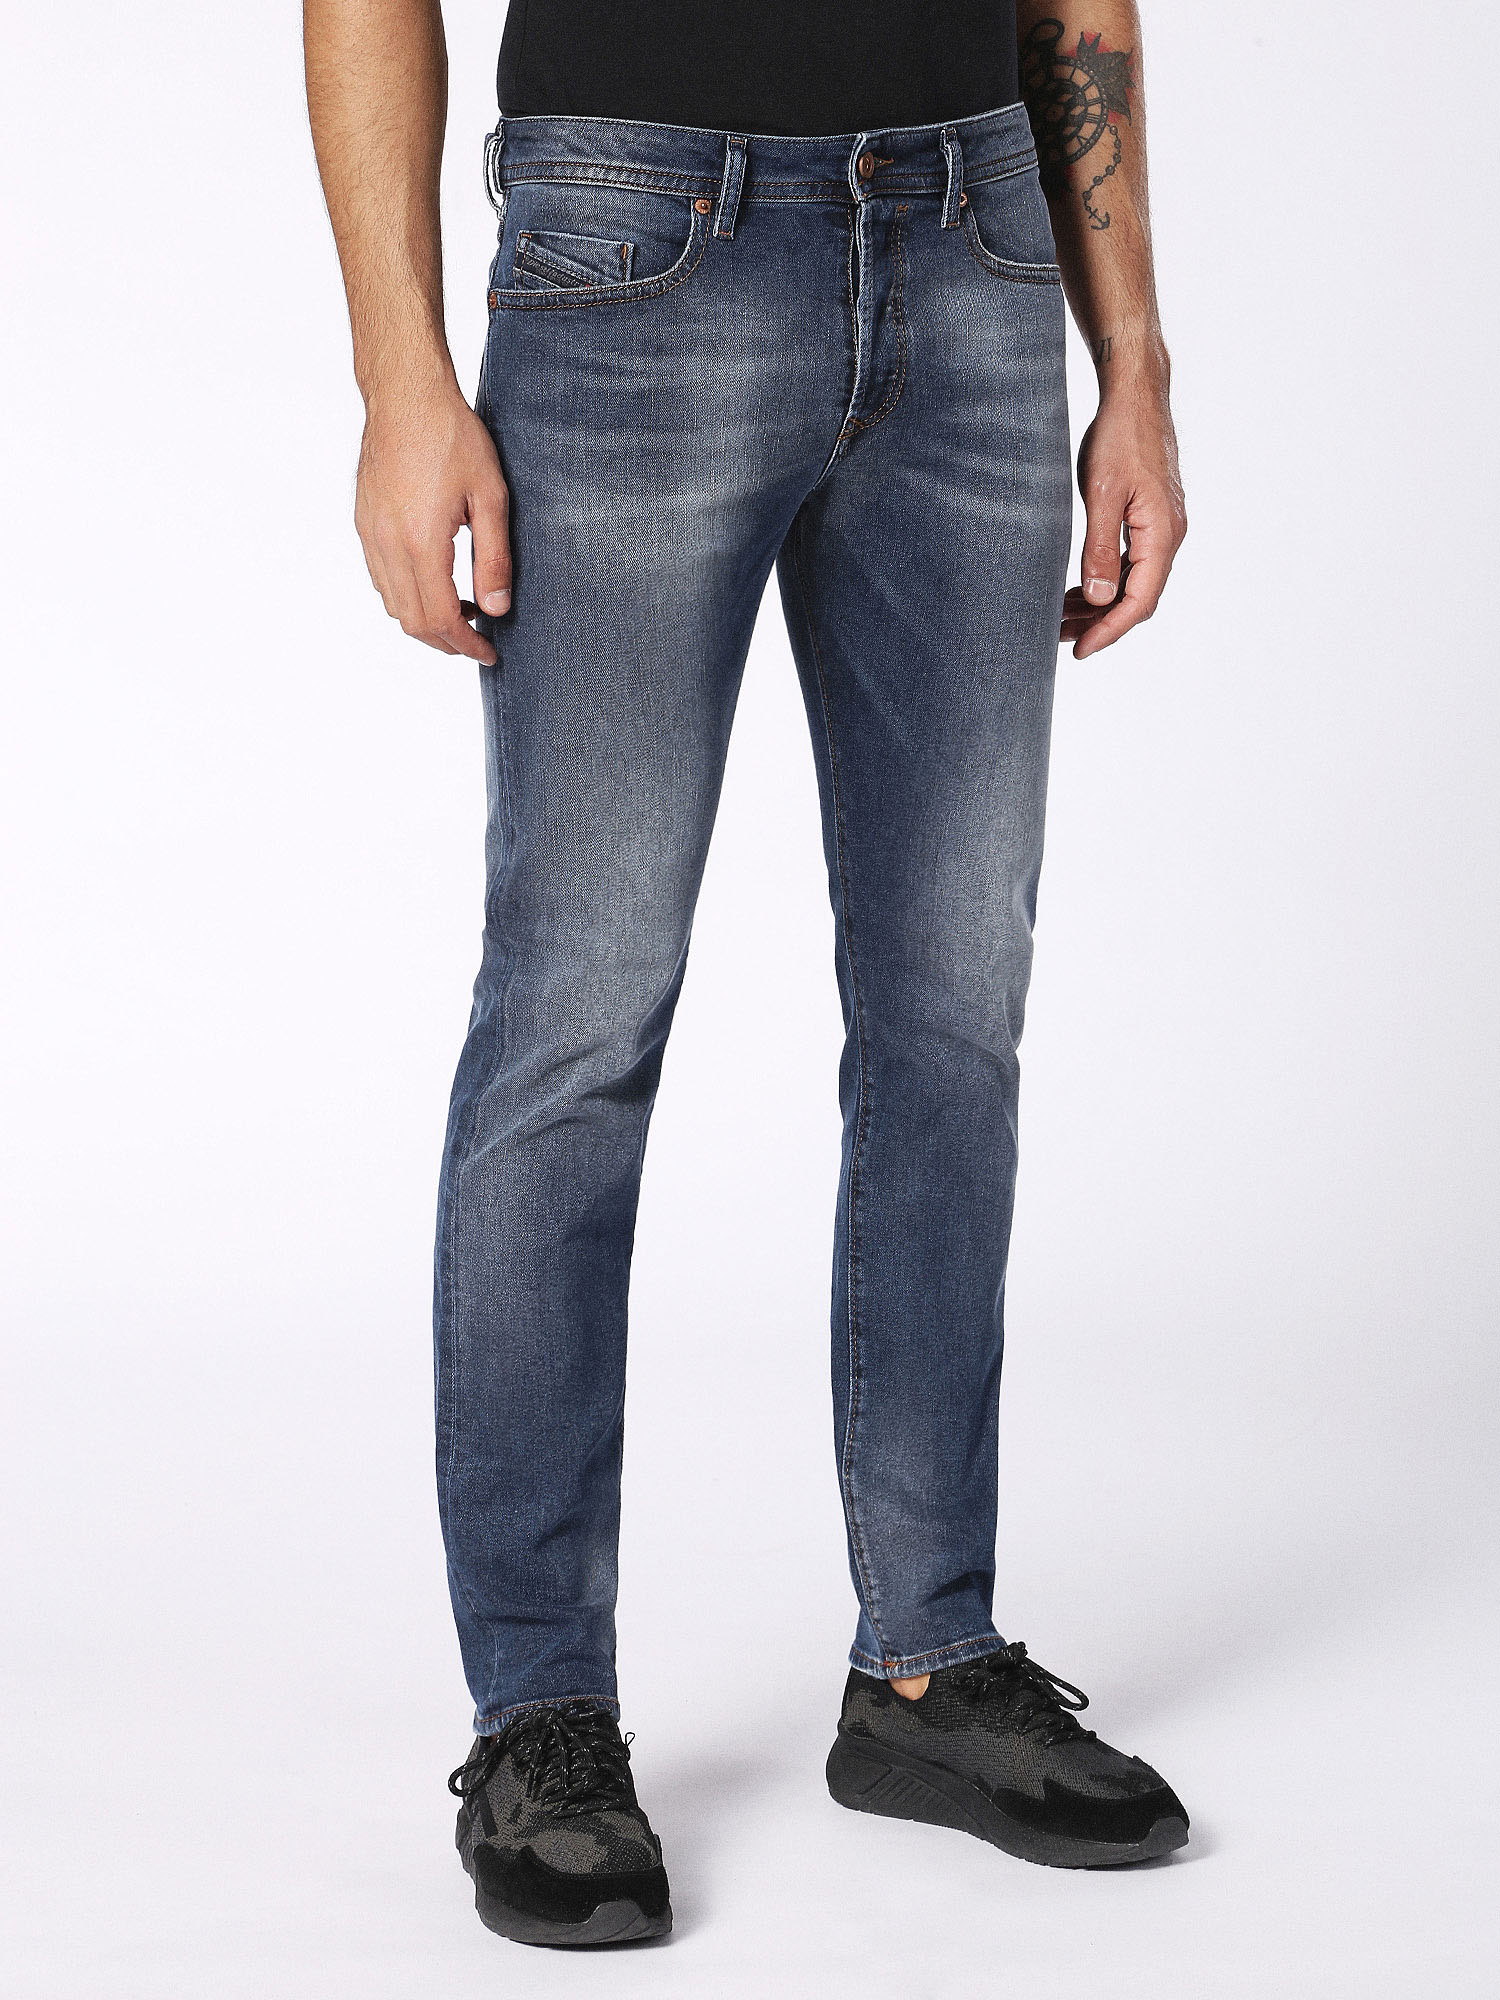 Diesel - Buster 084NS,  - Jeans - Image 3